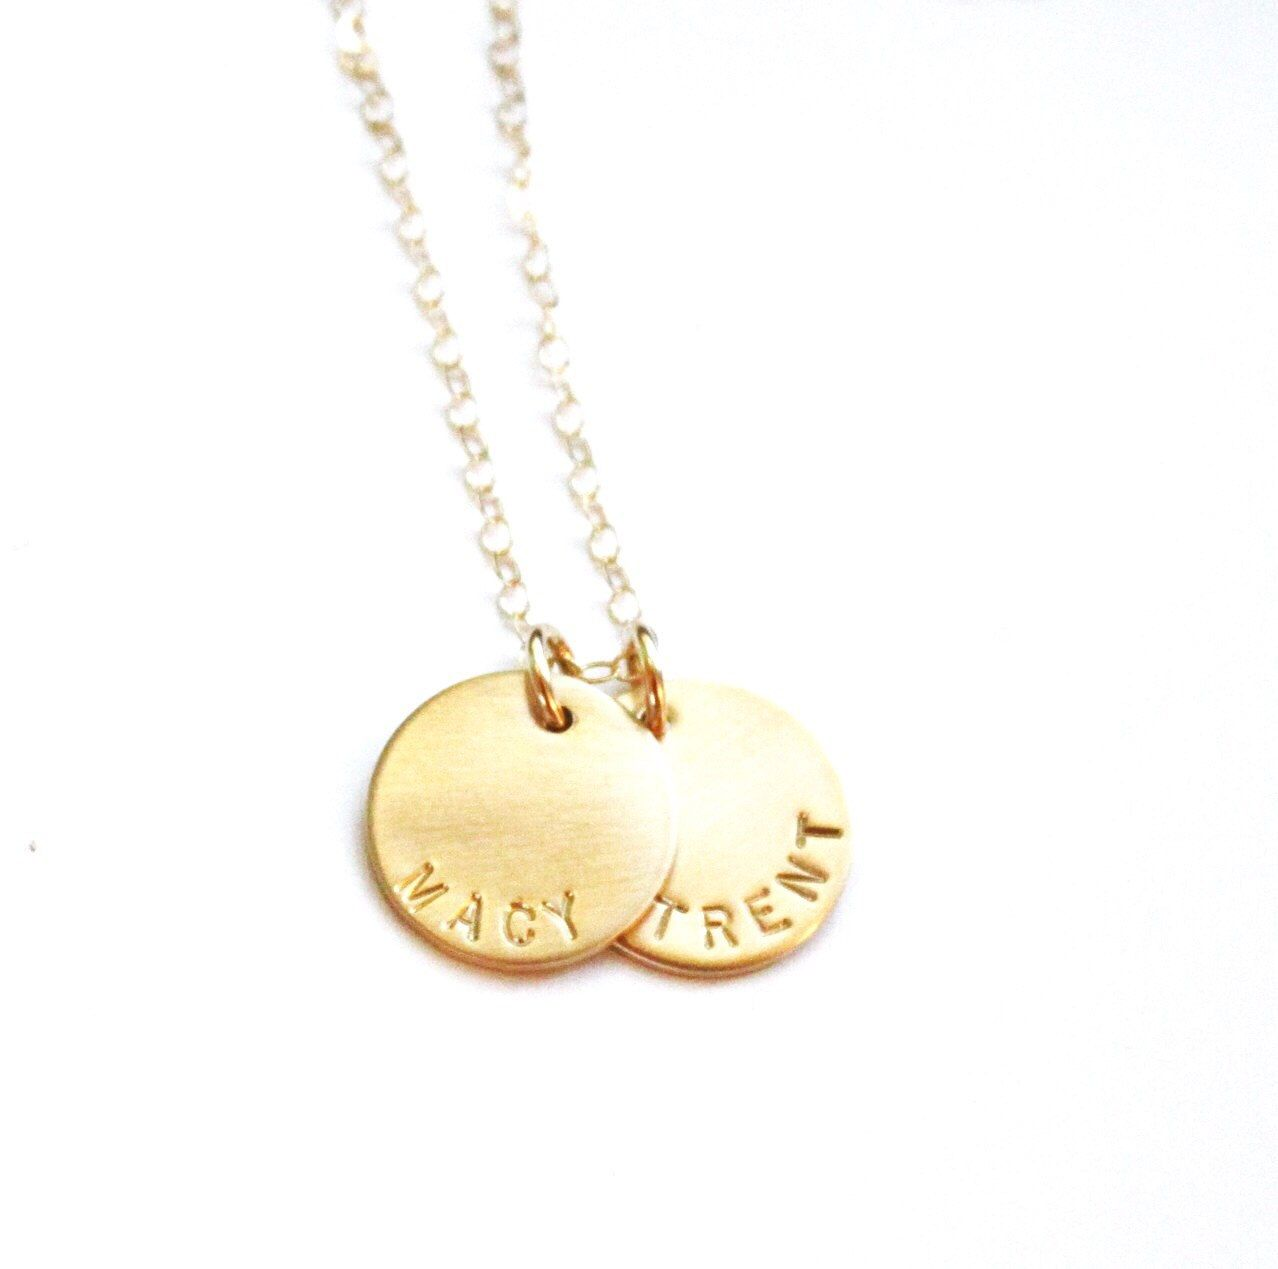 Custom Name Necklace Silver Gold Necklace Personalized Necklace